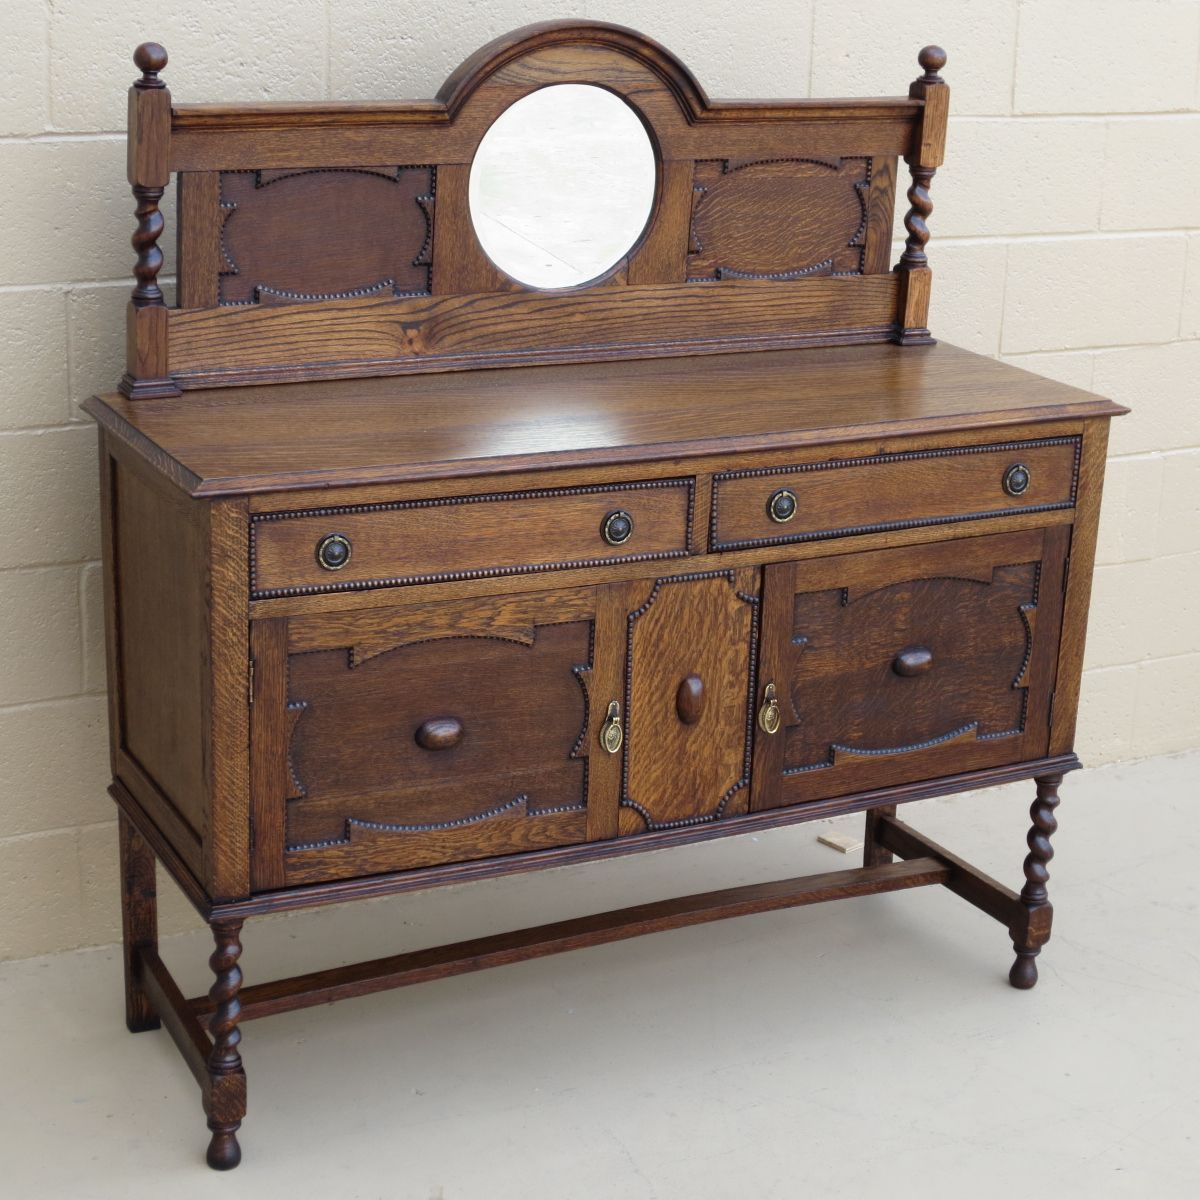 antique sideboard furniture english antique sideboard. Black Bedroom Furniture Sets. Home Design Ideas